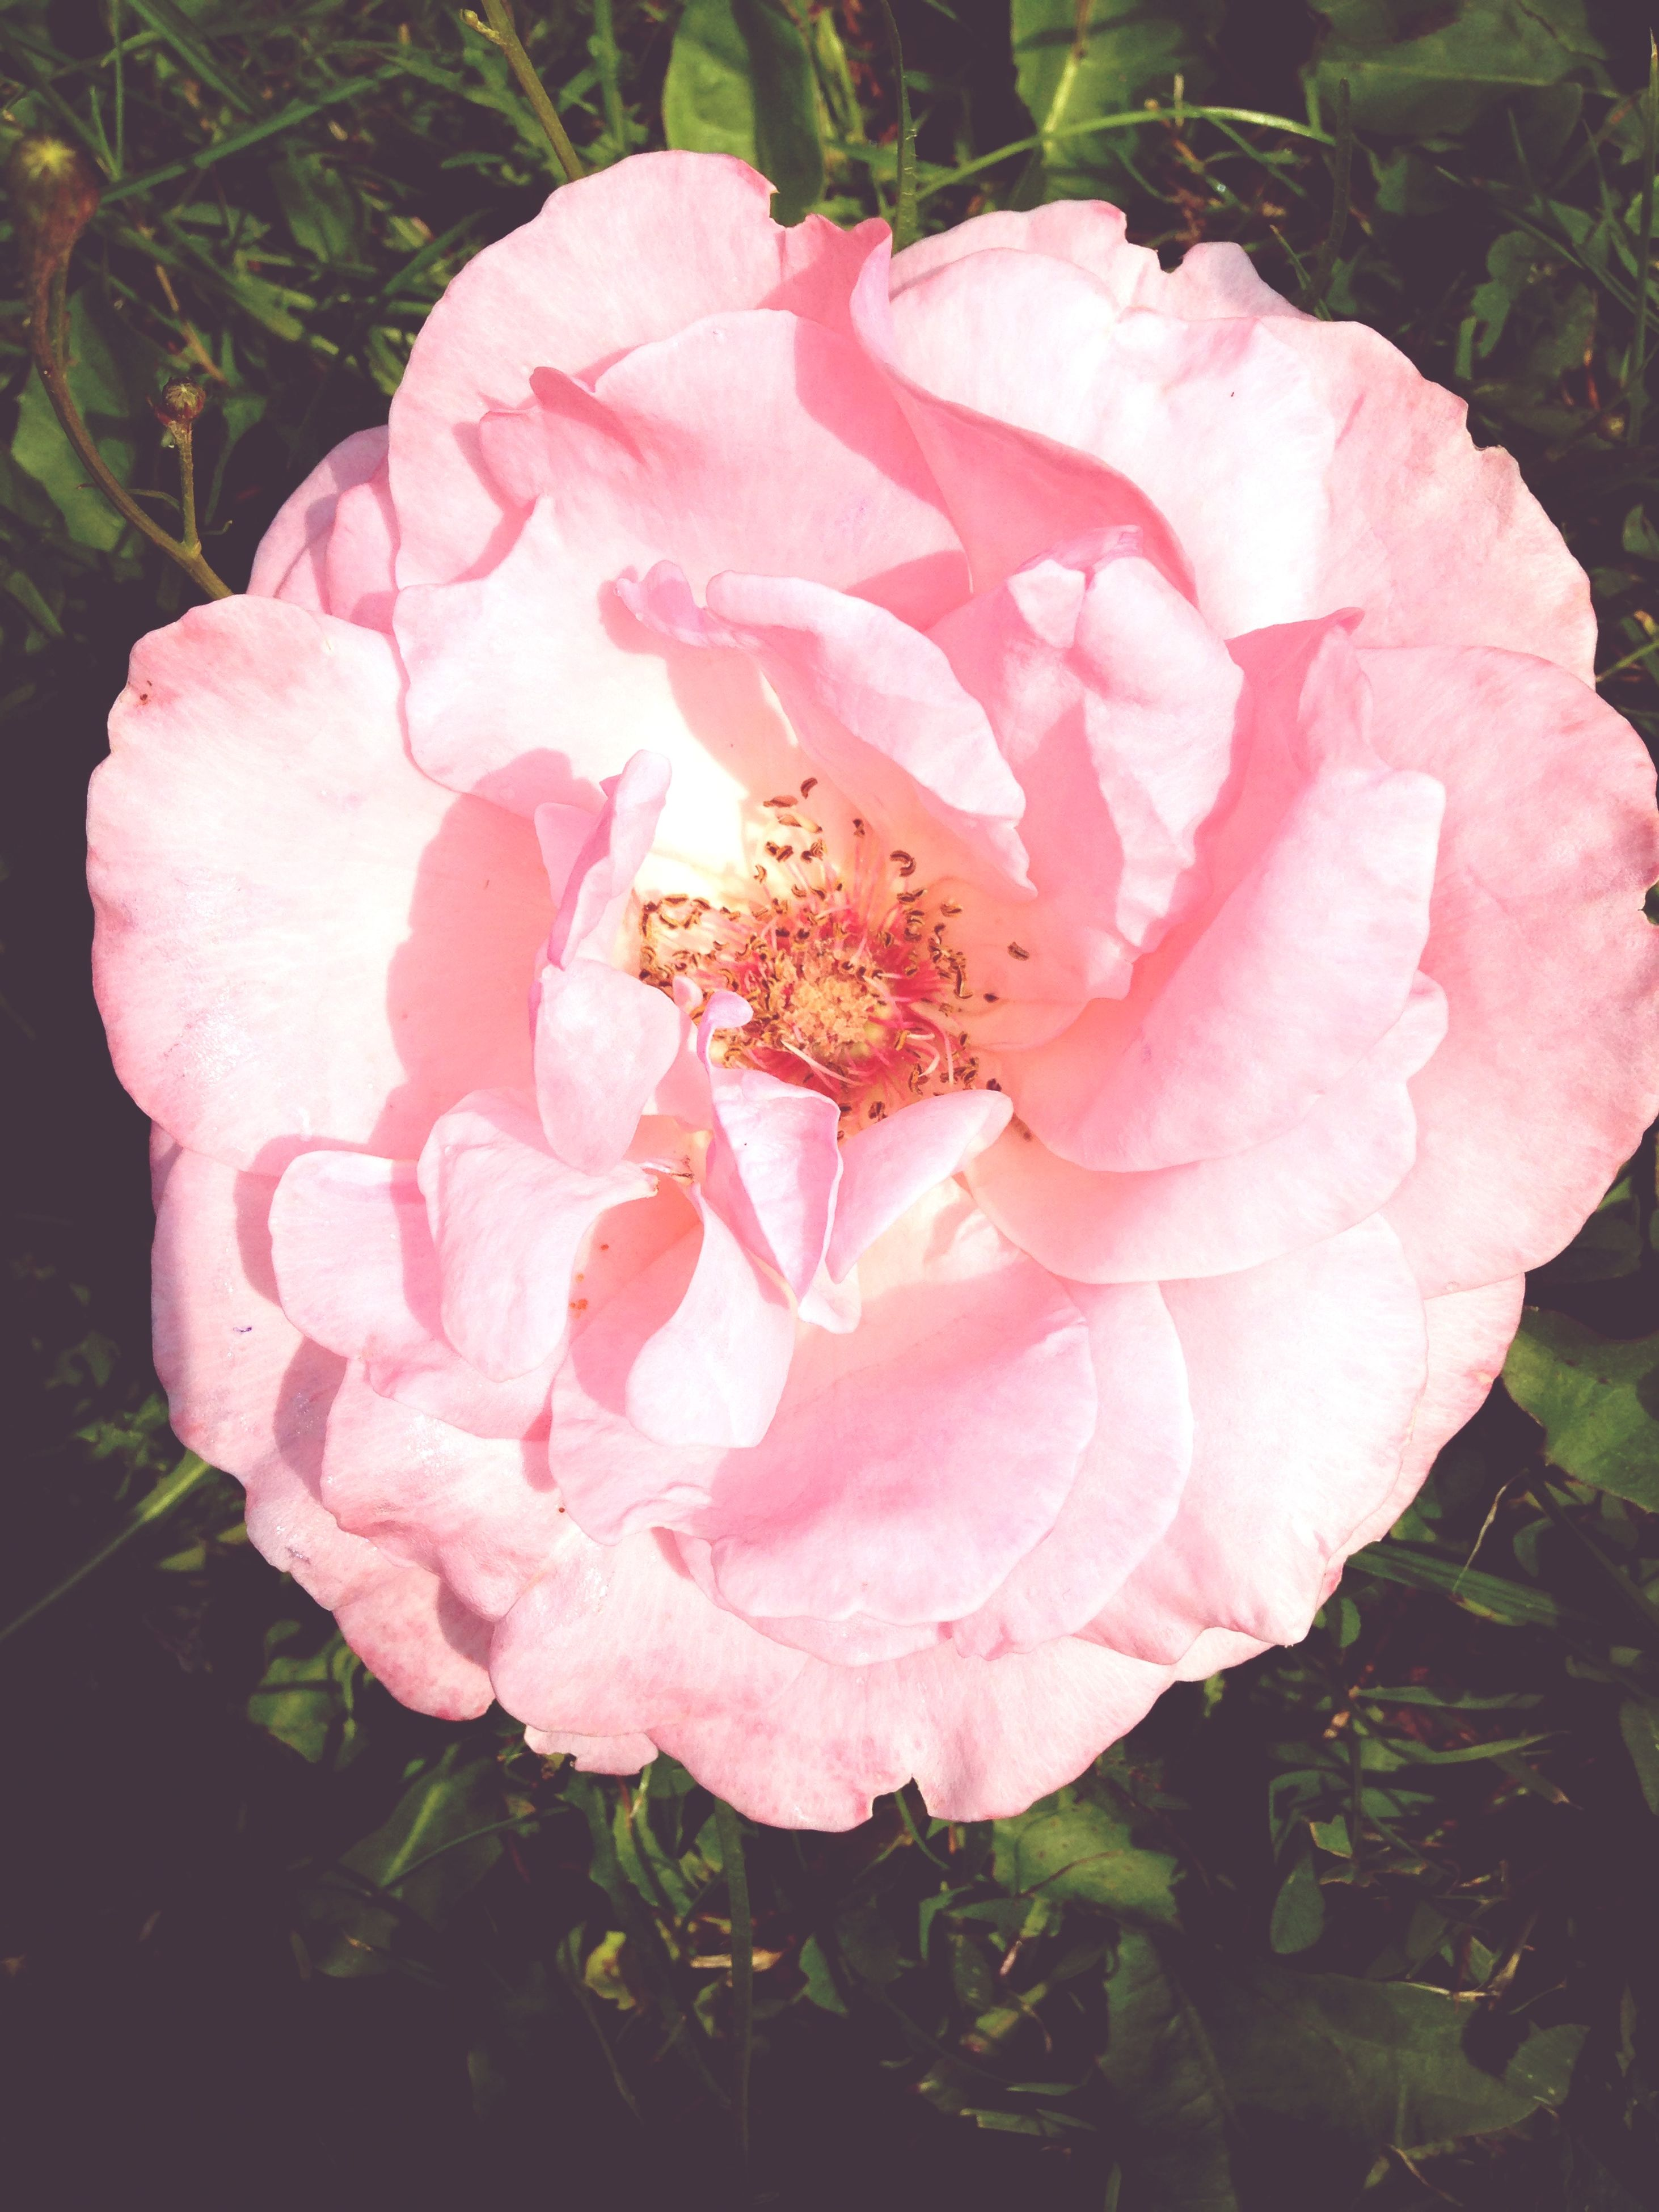 flower, petal, freshness, fragility, flower head, growth, beauty in nature, pink color, close-up, blooming, nature, plant, single flower, rose - flower, in bloom, focus on foreground, park - man made space, pink, high angle view, day